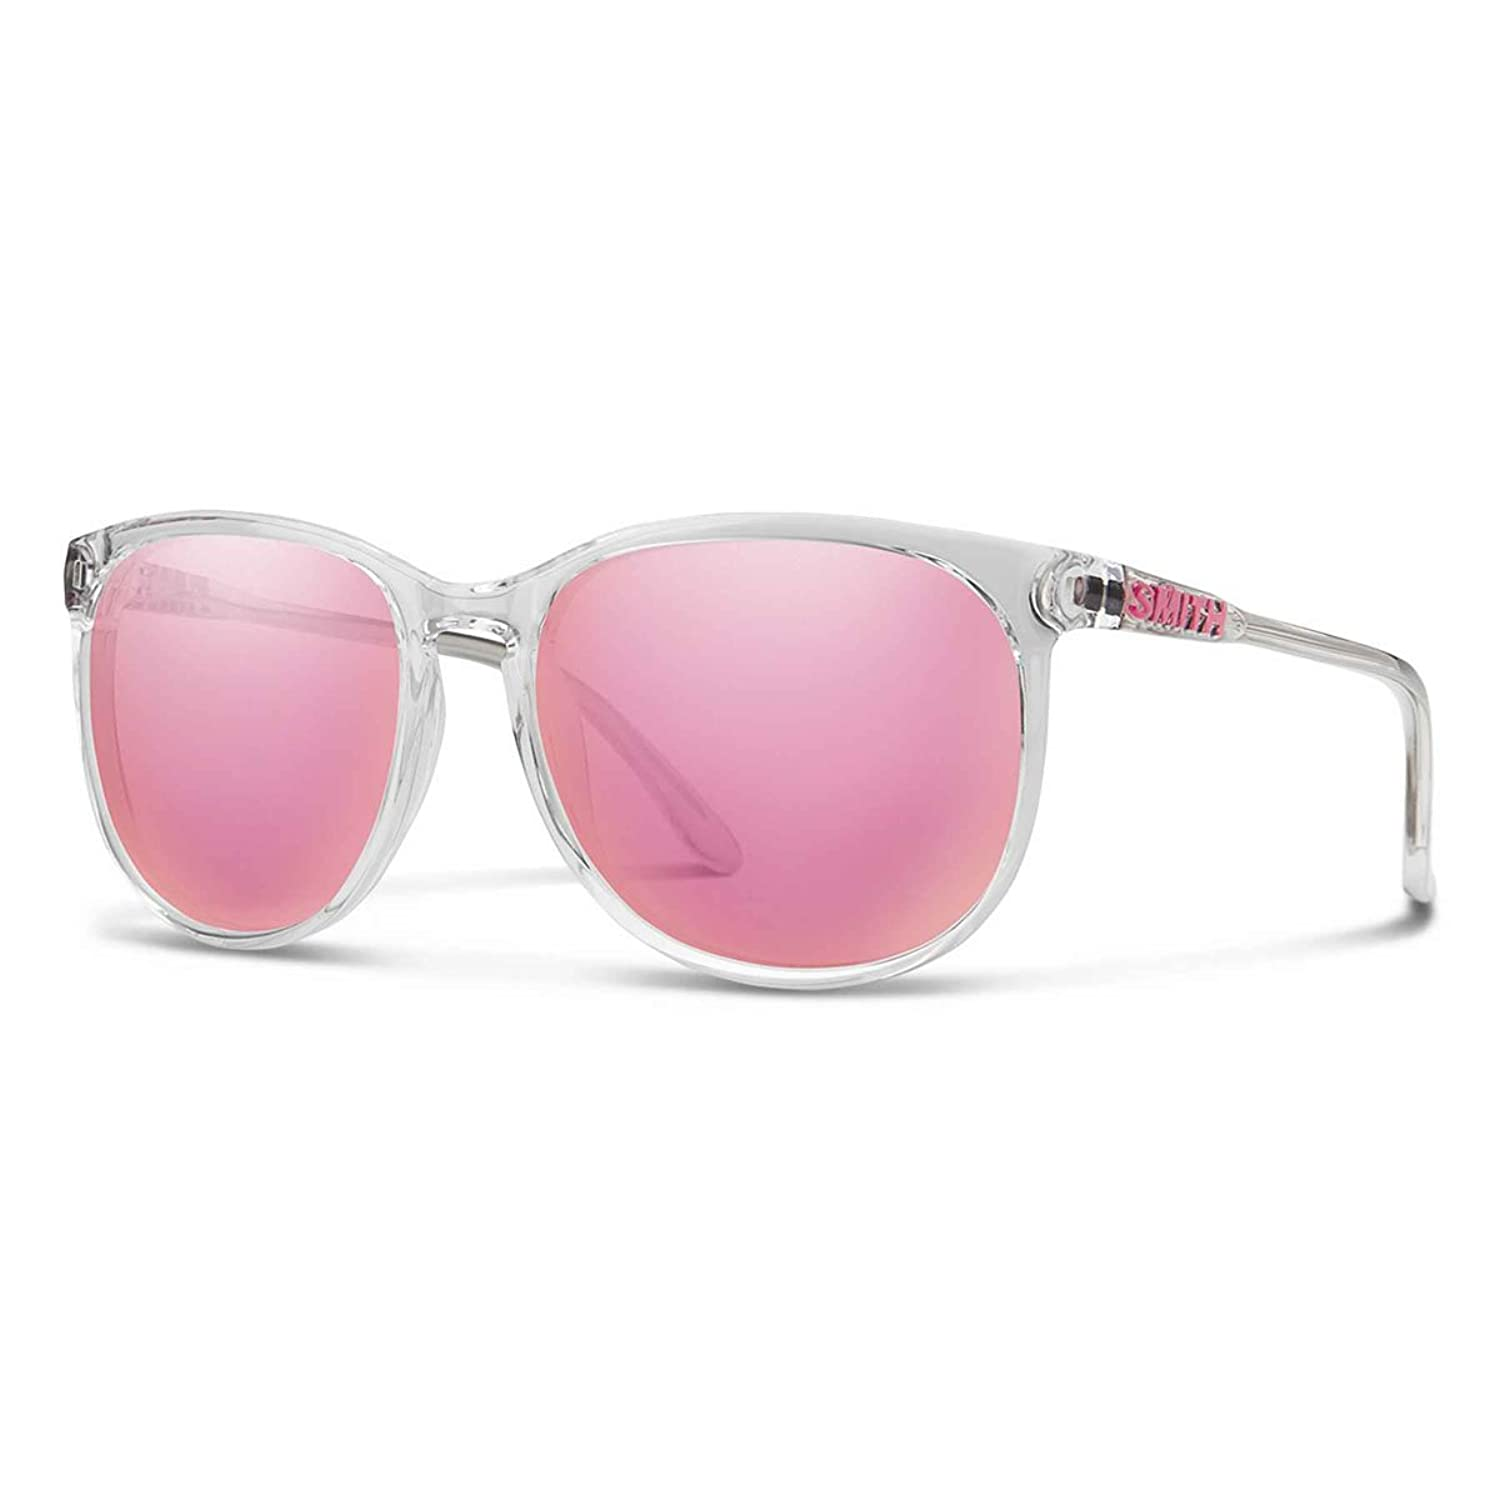 36d1d09c78 Amazon.com  Smith Optics Womens Mt. Shasta Archive Sunglasses - Crystal Carbonic  Pink Mirror  Clothing